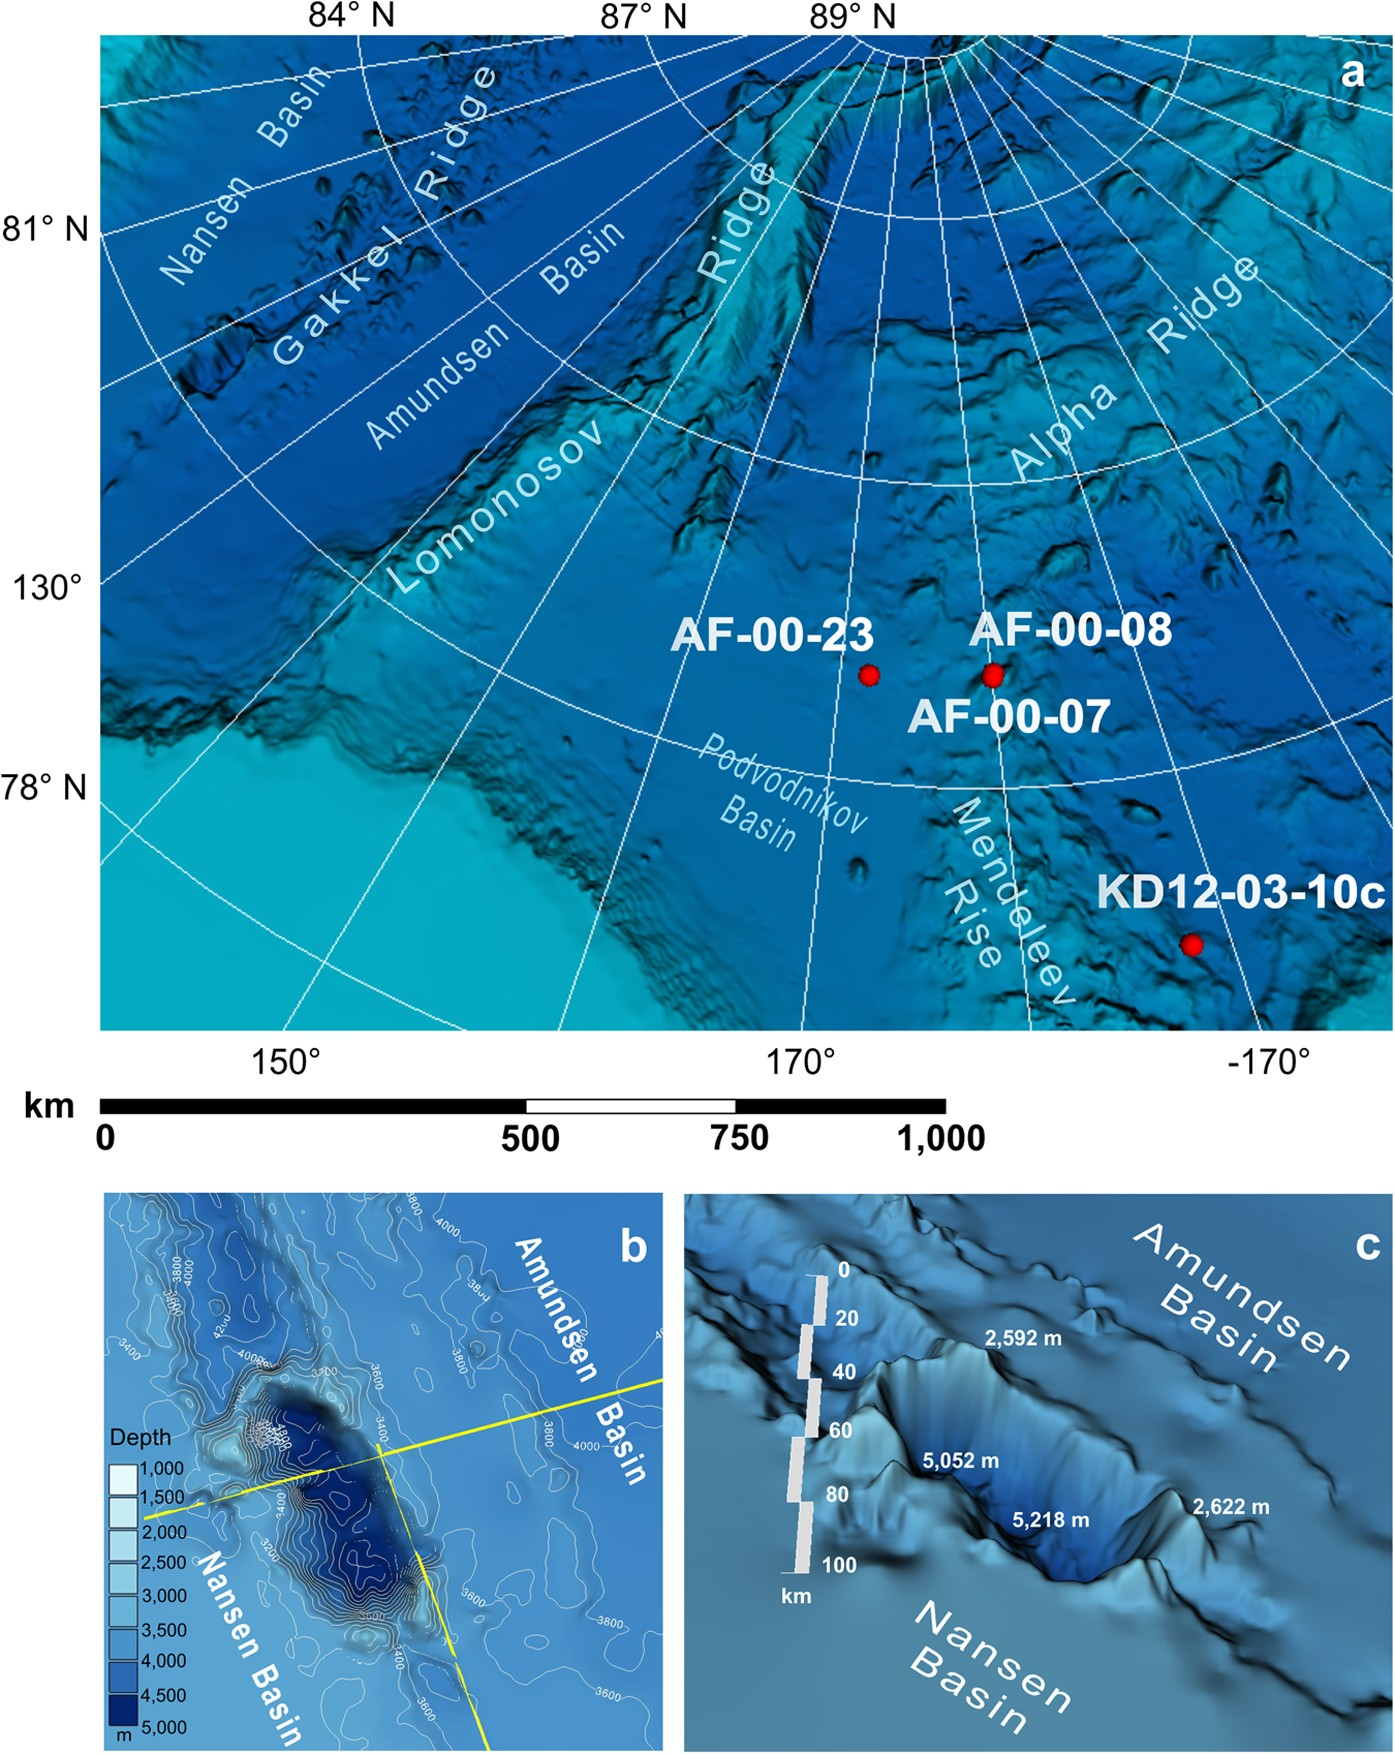 Giant caldera in the Arctic Ocean: Evidence of the ... on massif map, lagoon map, glacier map, ocean map, coral reef map, channel map, gulf map, sailing map, mediterranean map, south east asia map, caribbean map, estuary map, lake map, mariana trench map, peninsula map, seabed map, world map, volcano map, sound map, bay map,